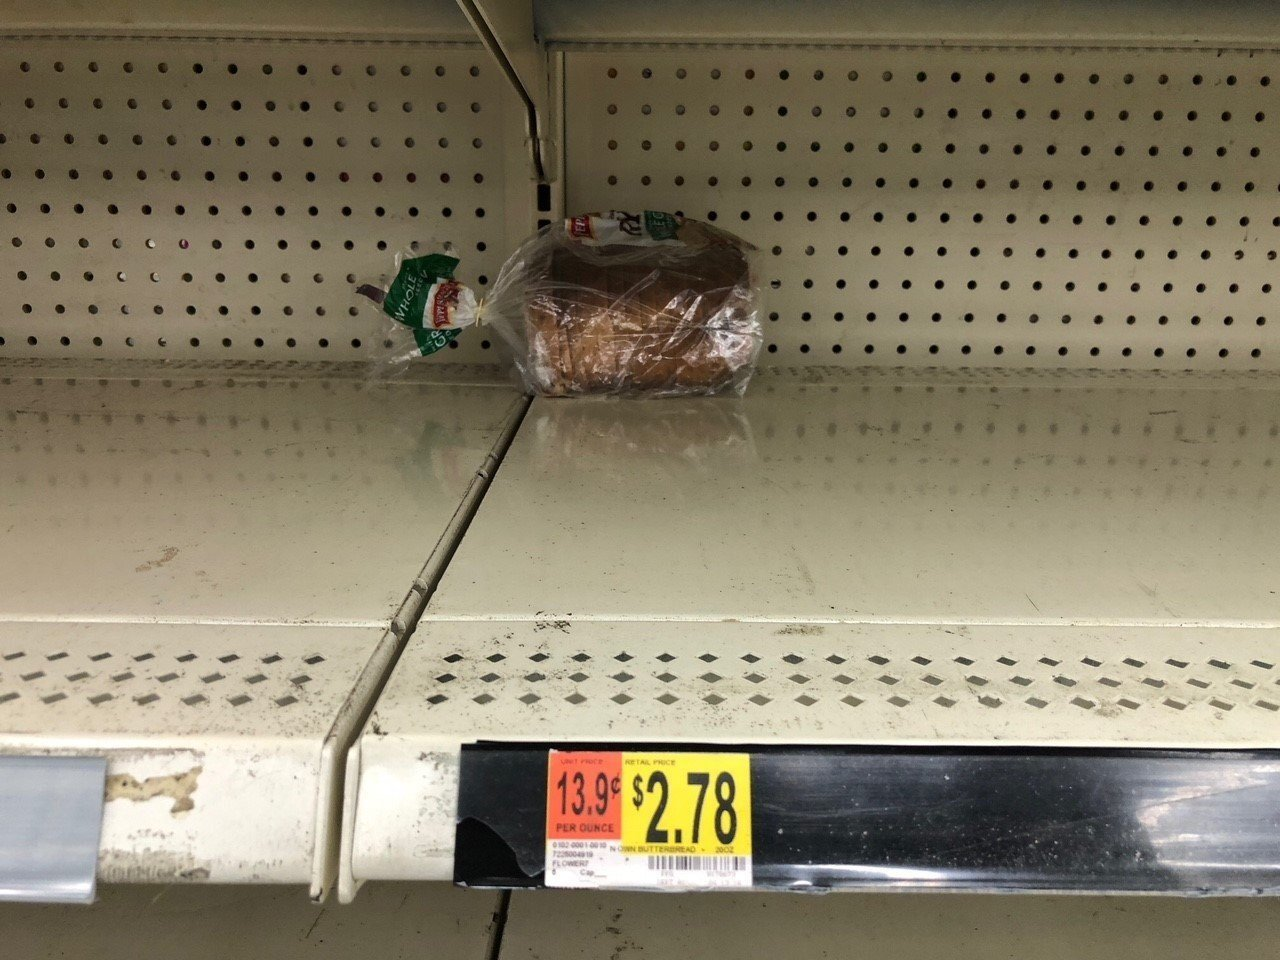 North Carolina Beach/Wilmington Walmart has empty shelves as residents prepare for Hurricane Florence.